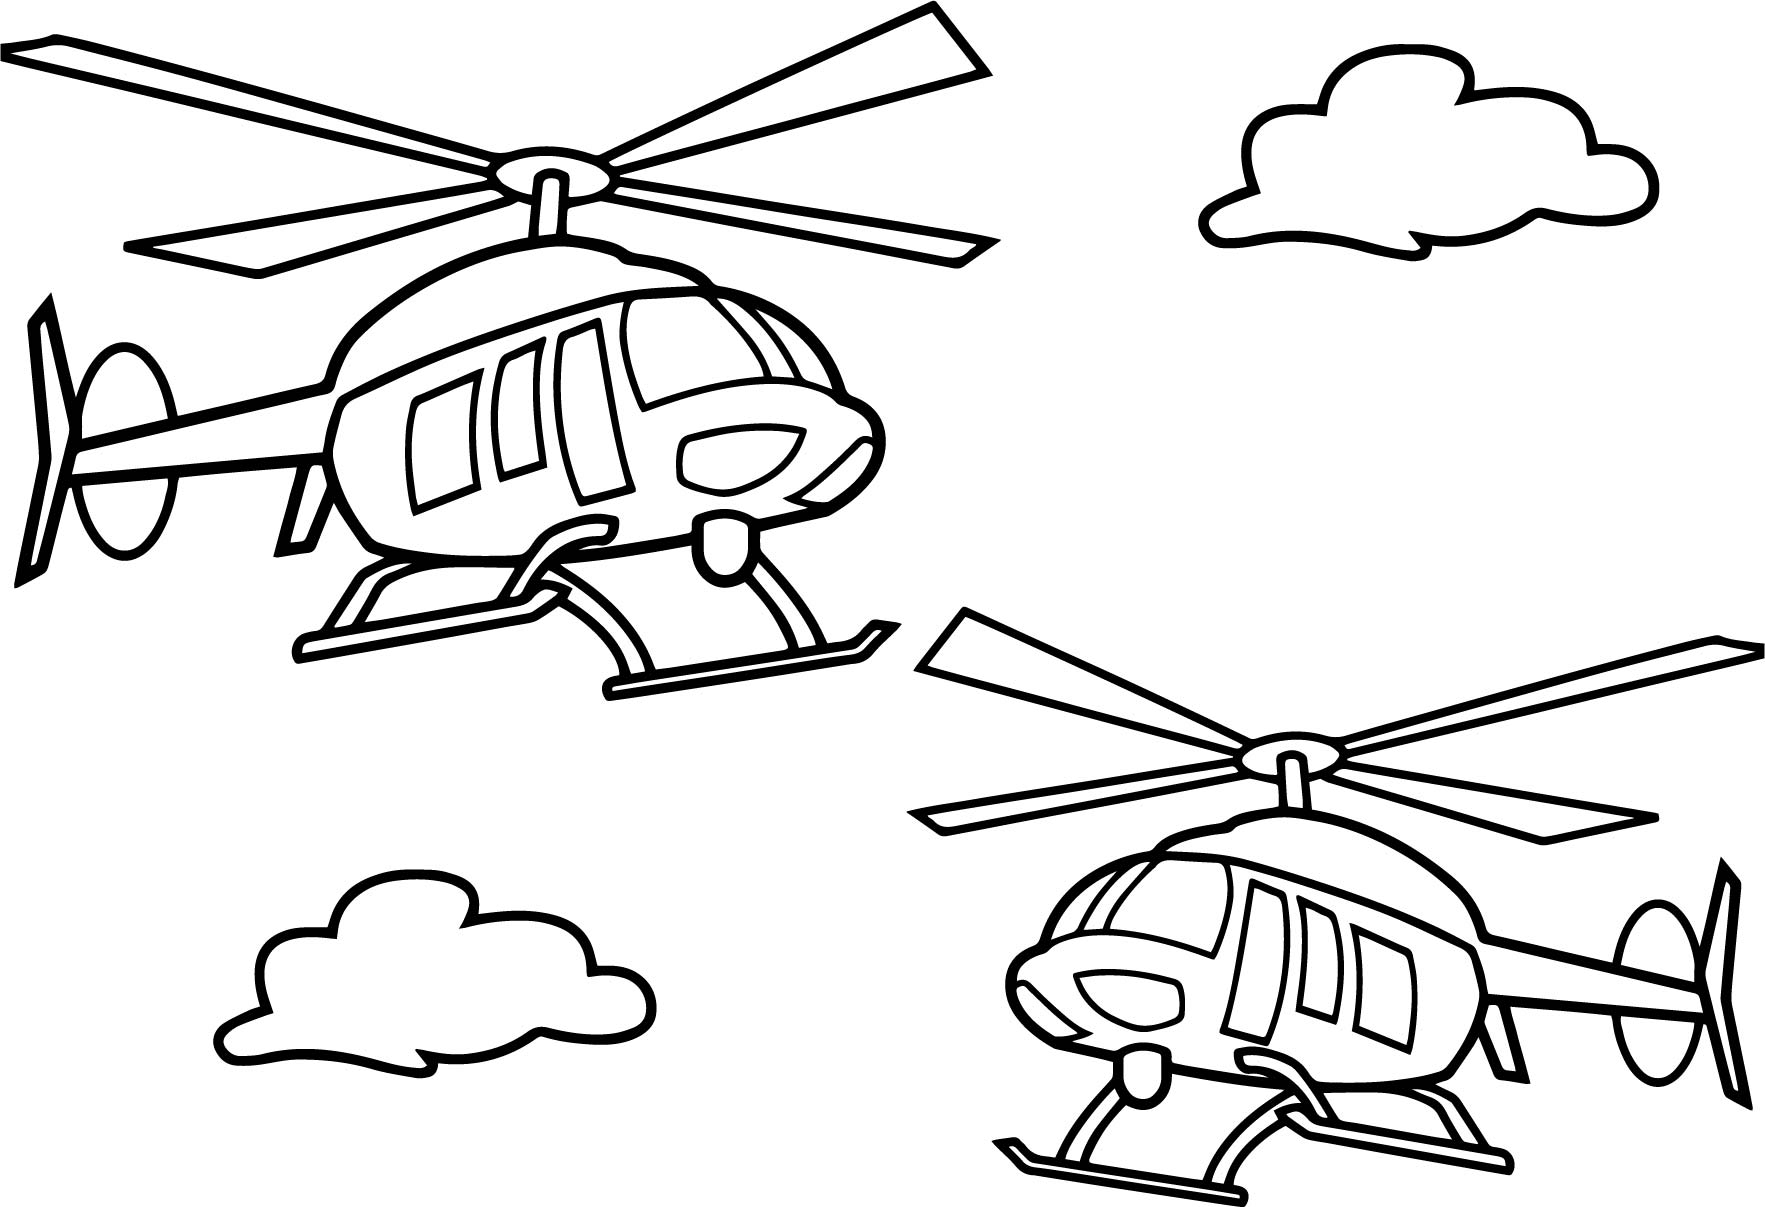 helicopter colouring pages free printable helicopter coloring pages for kids pages colouring helicopter